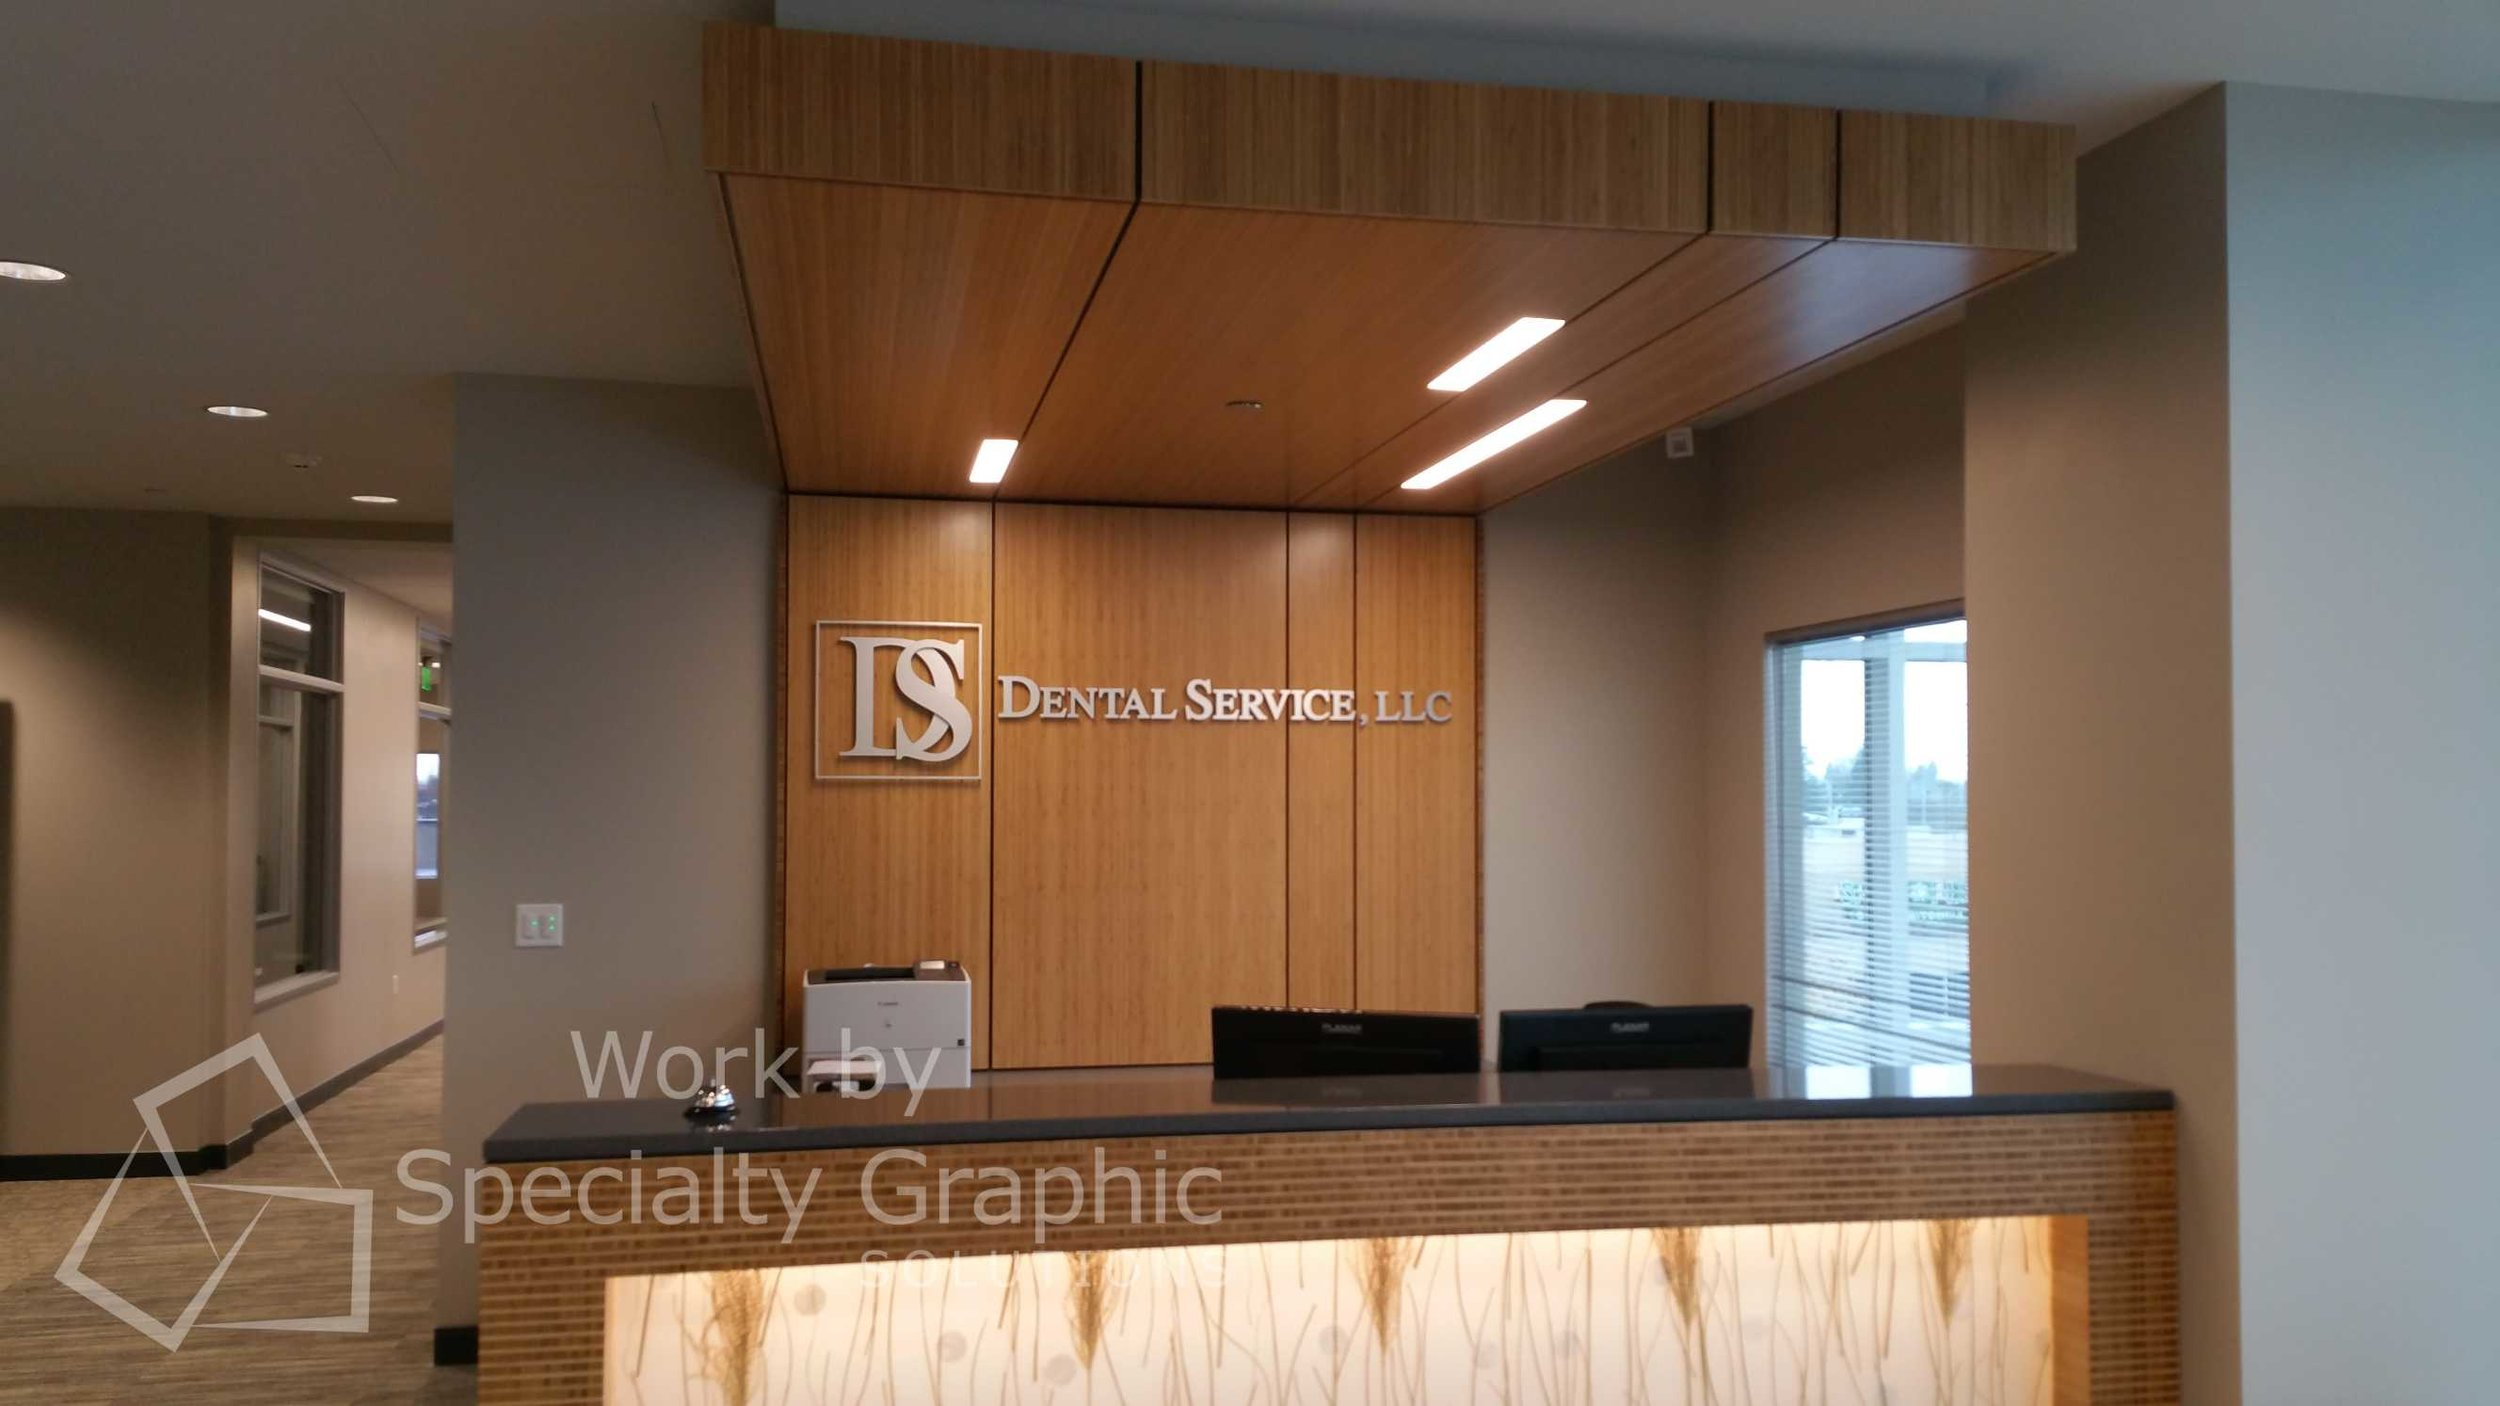 3d letter logo lobby signs in vancouver great for dental firms